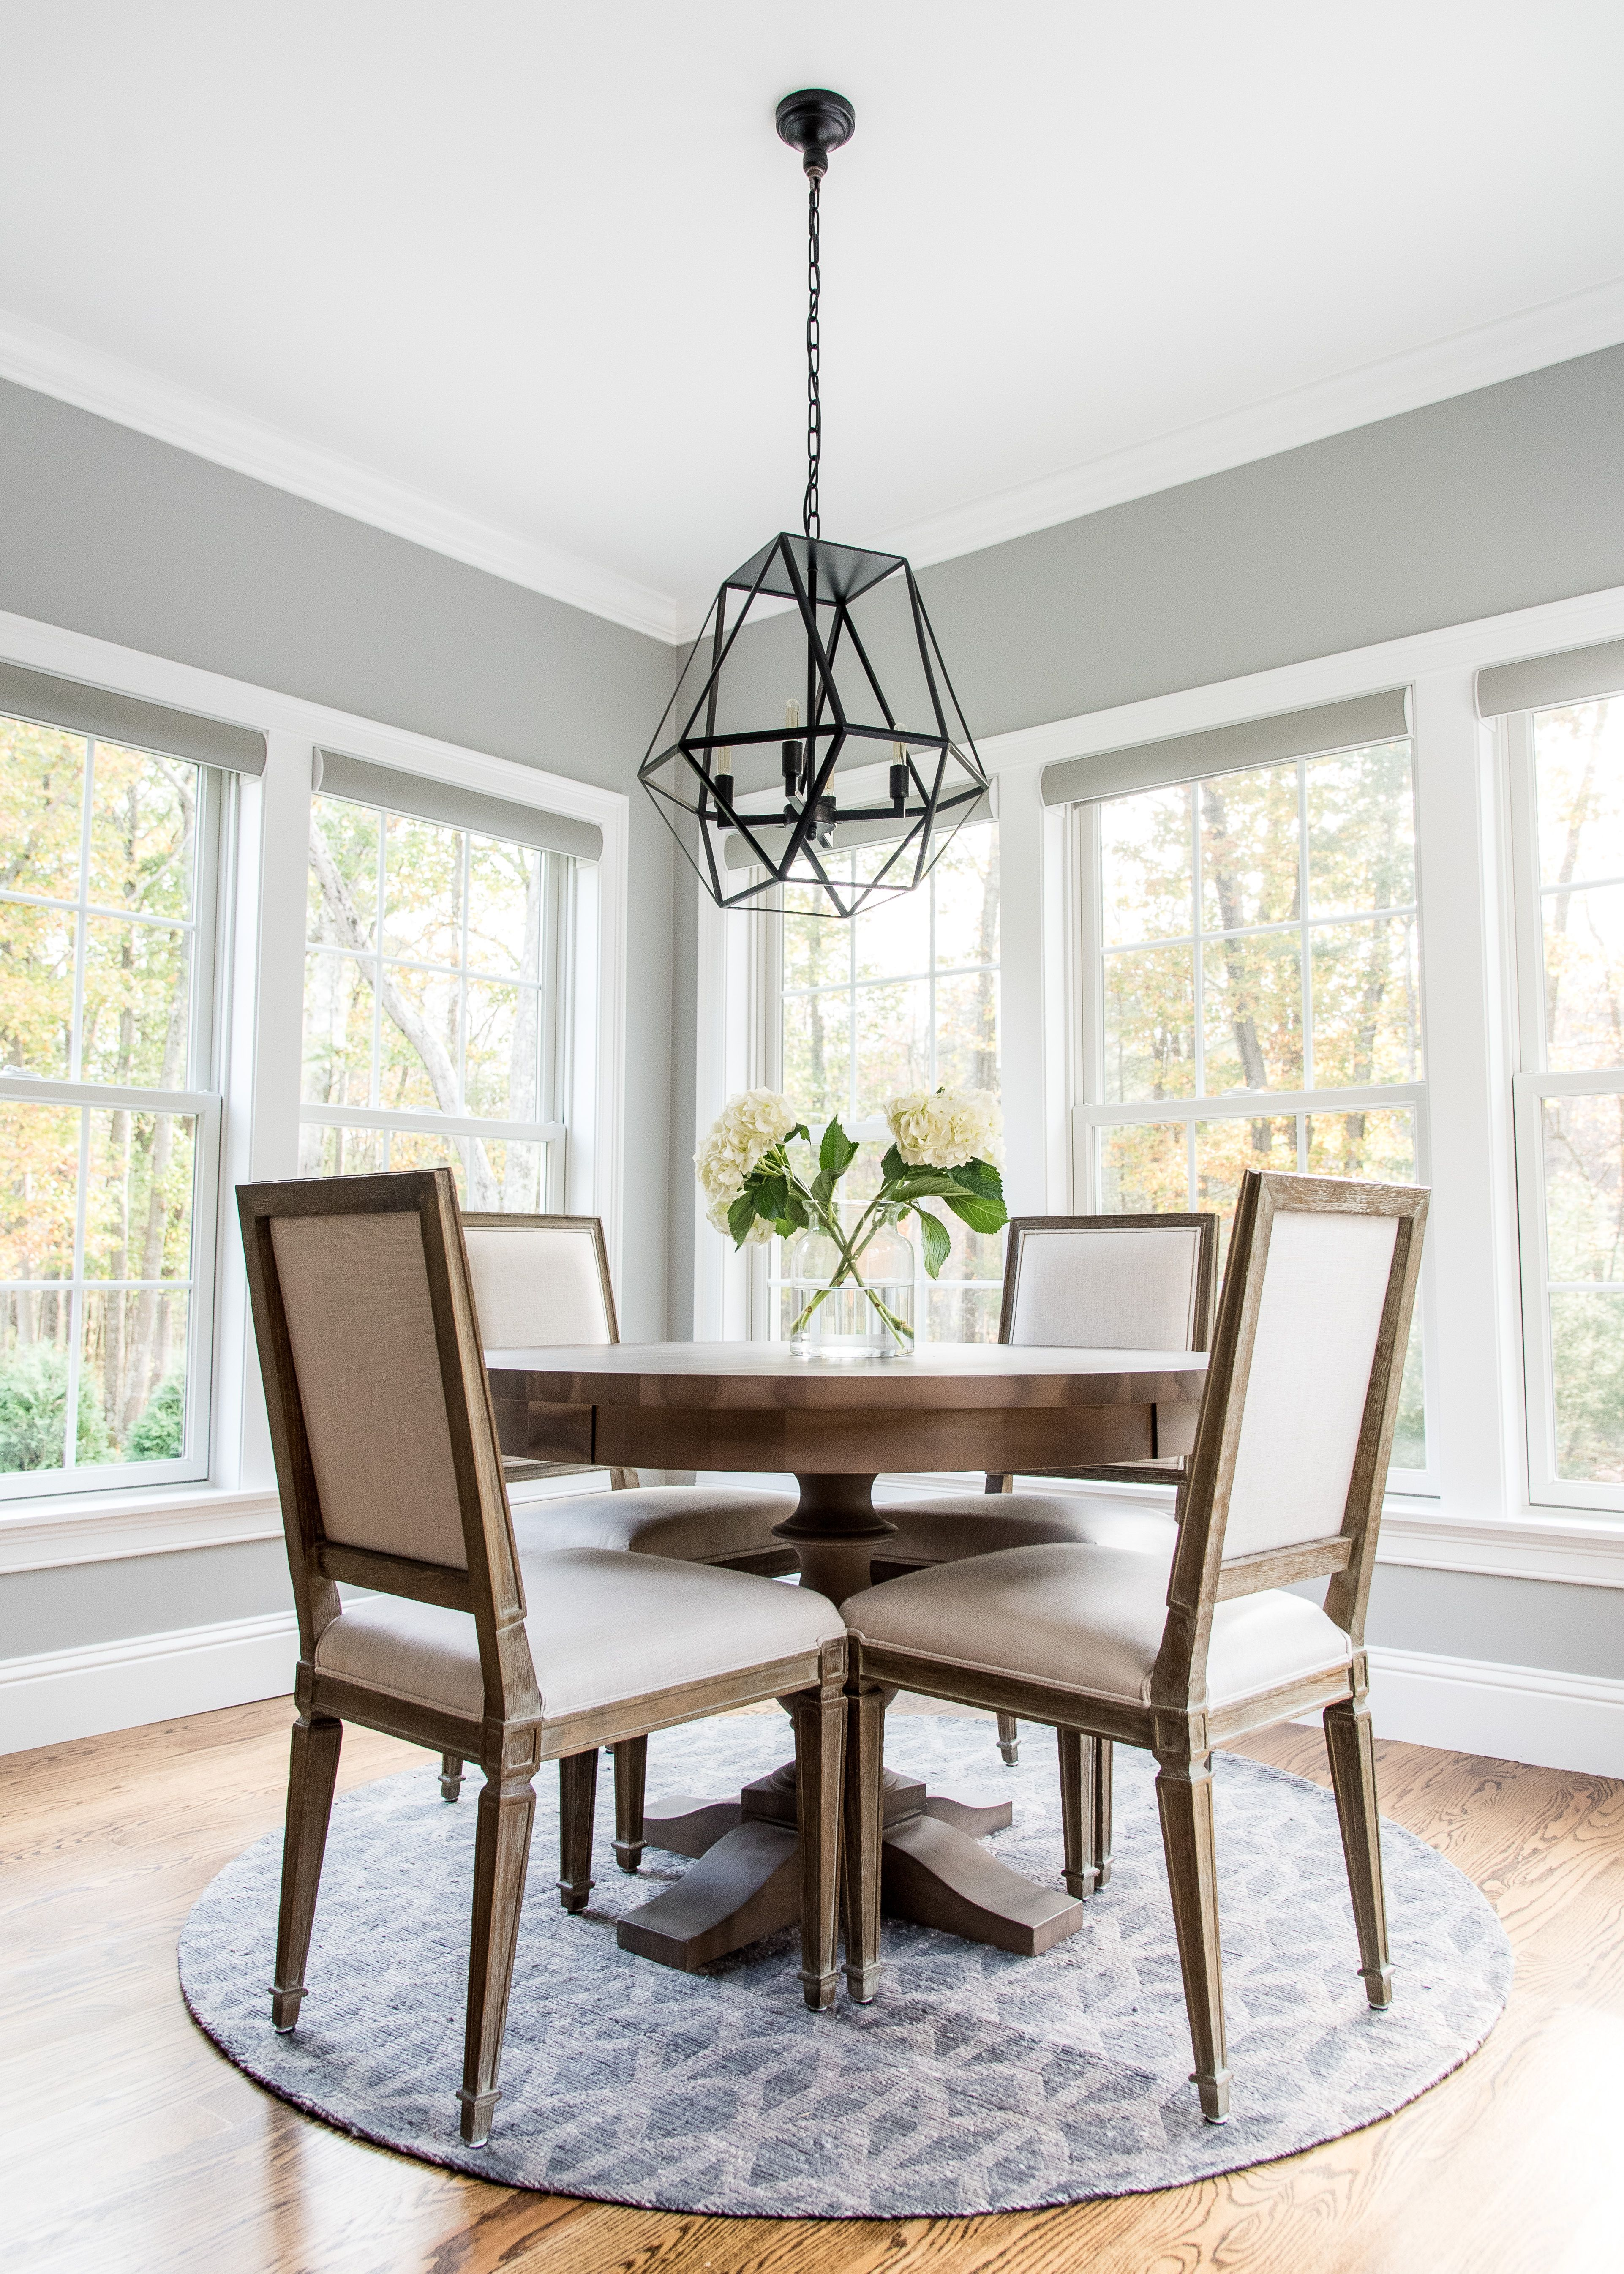 Kitchen Dining Interior Design: Kitchen Design From Our Little Meadow Project